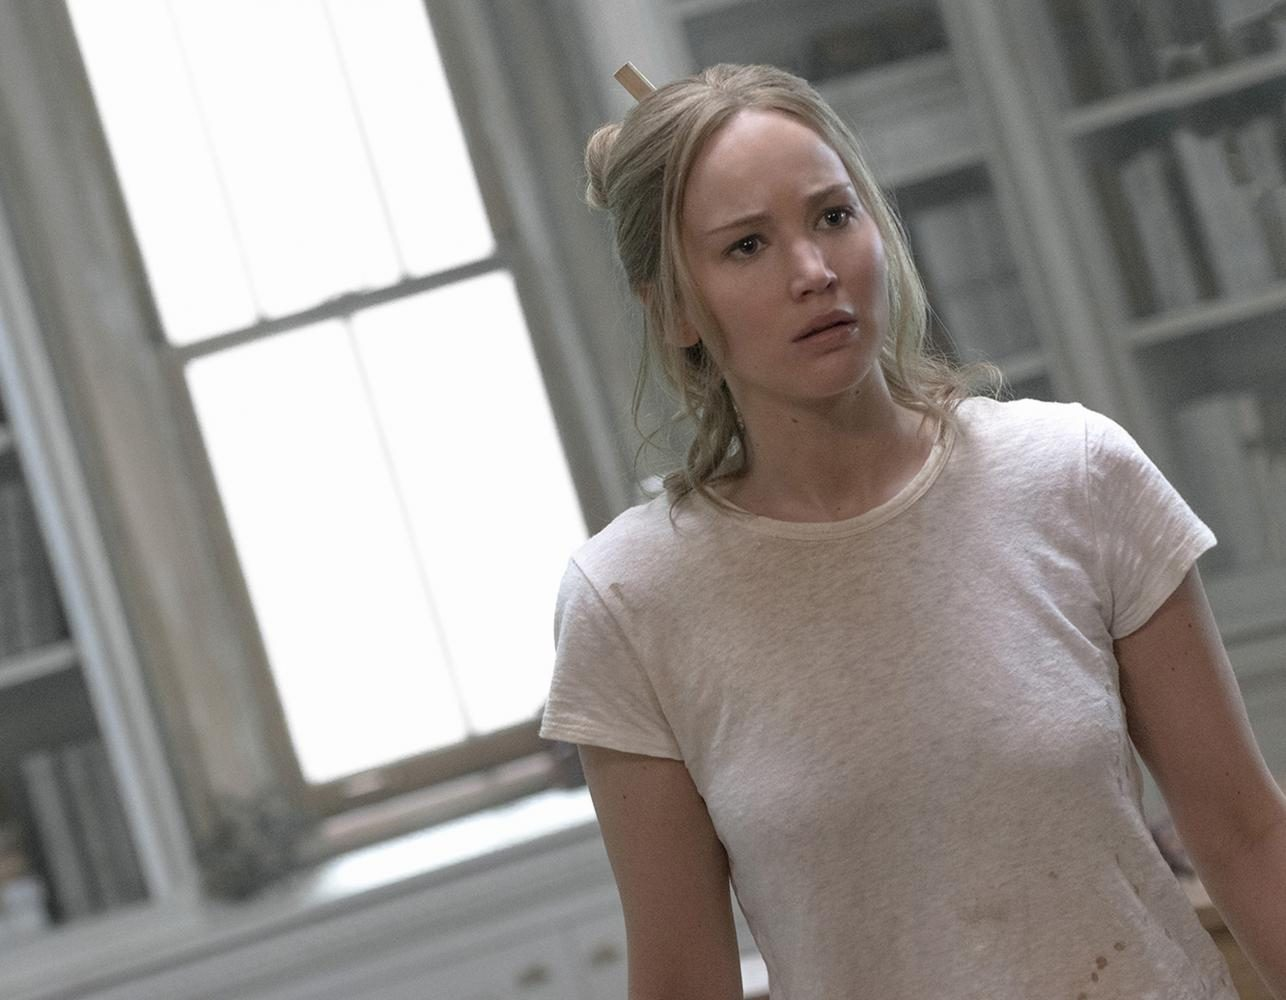 Jennifer+Lawrence+stars+in+the+new+psychological+horror+film+%22Mother%21%22%2C+directed+by+Darren+Aronofsky.+The+film+has+polarized+critics+upon+release+and+currently+carries+a+68%25+approval+rating+on+Rotten+Tomatoes.